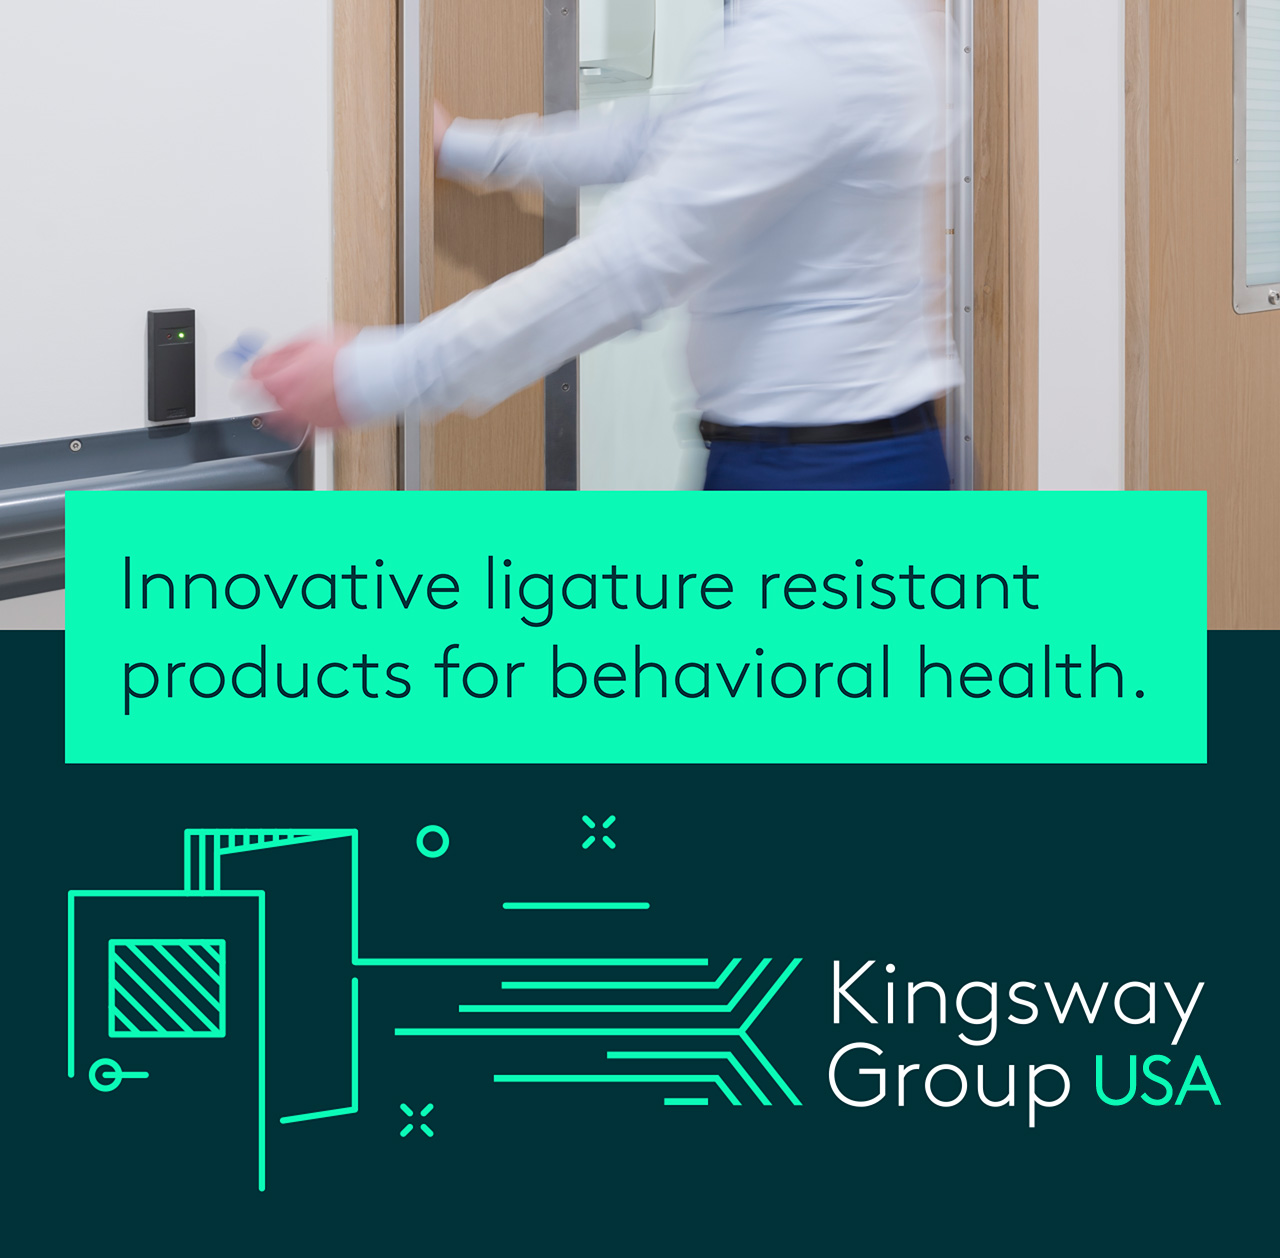 Kingsway Group anti-ligature products.